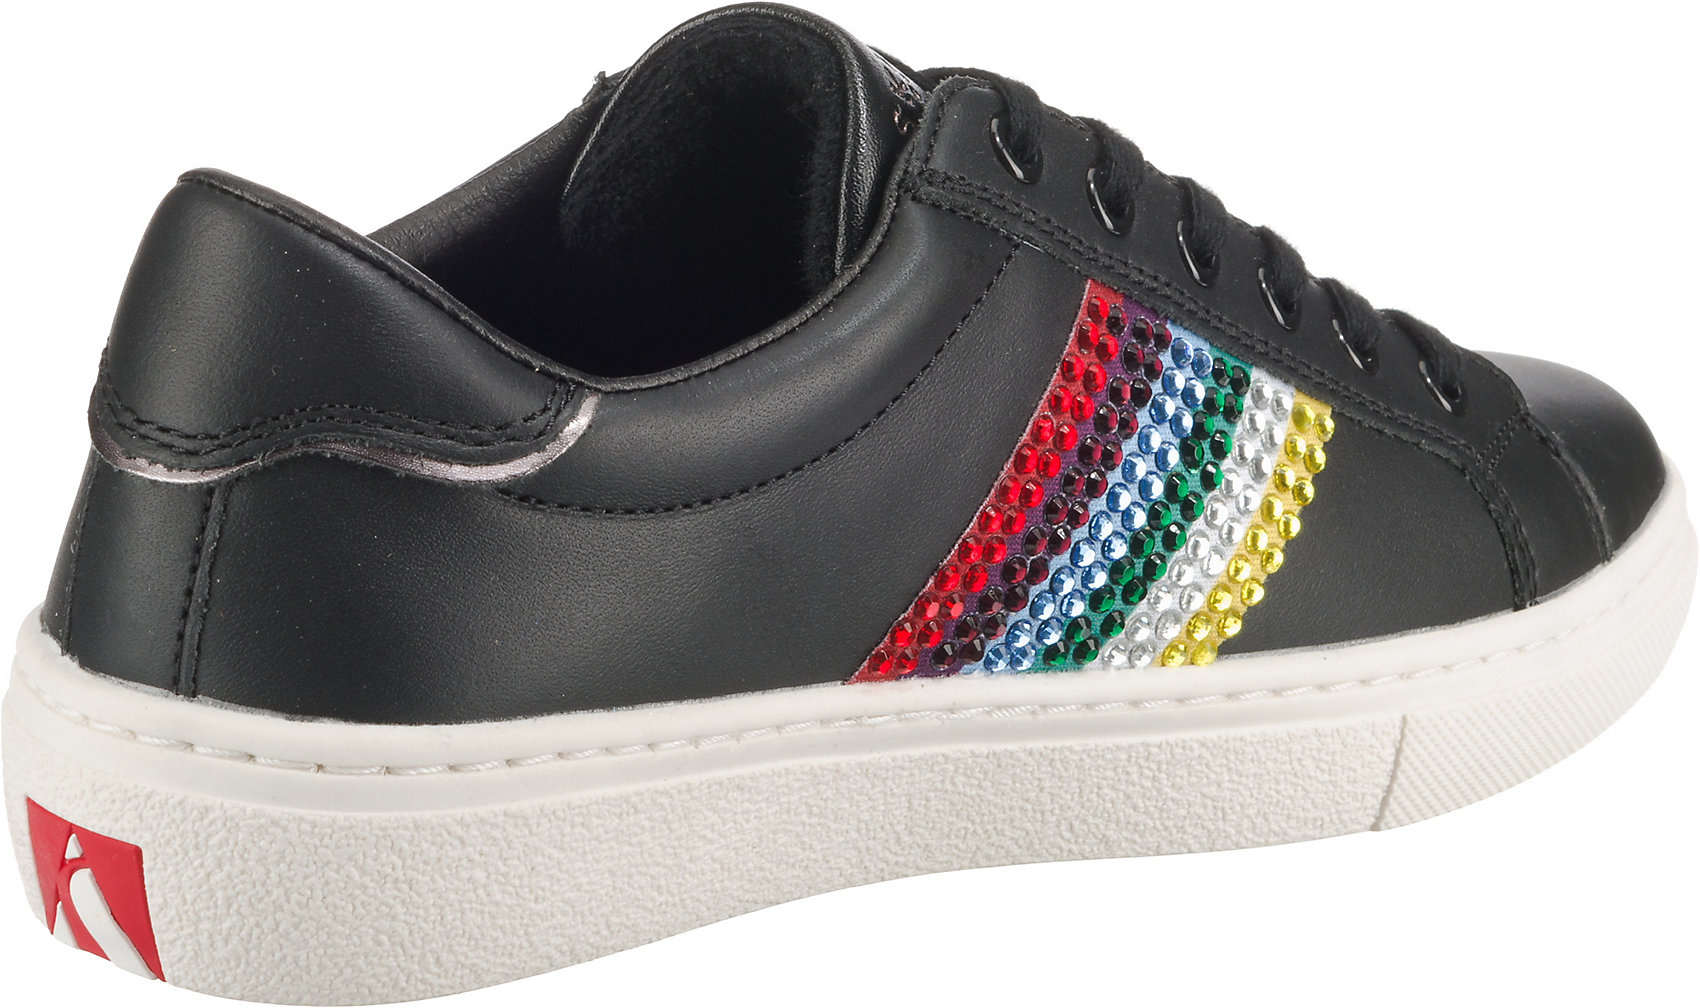 Neu SKECHERS GOLDIE RAINBOW ROCKERS Sneakers Low 10412191 P0bIj